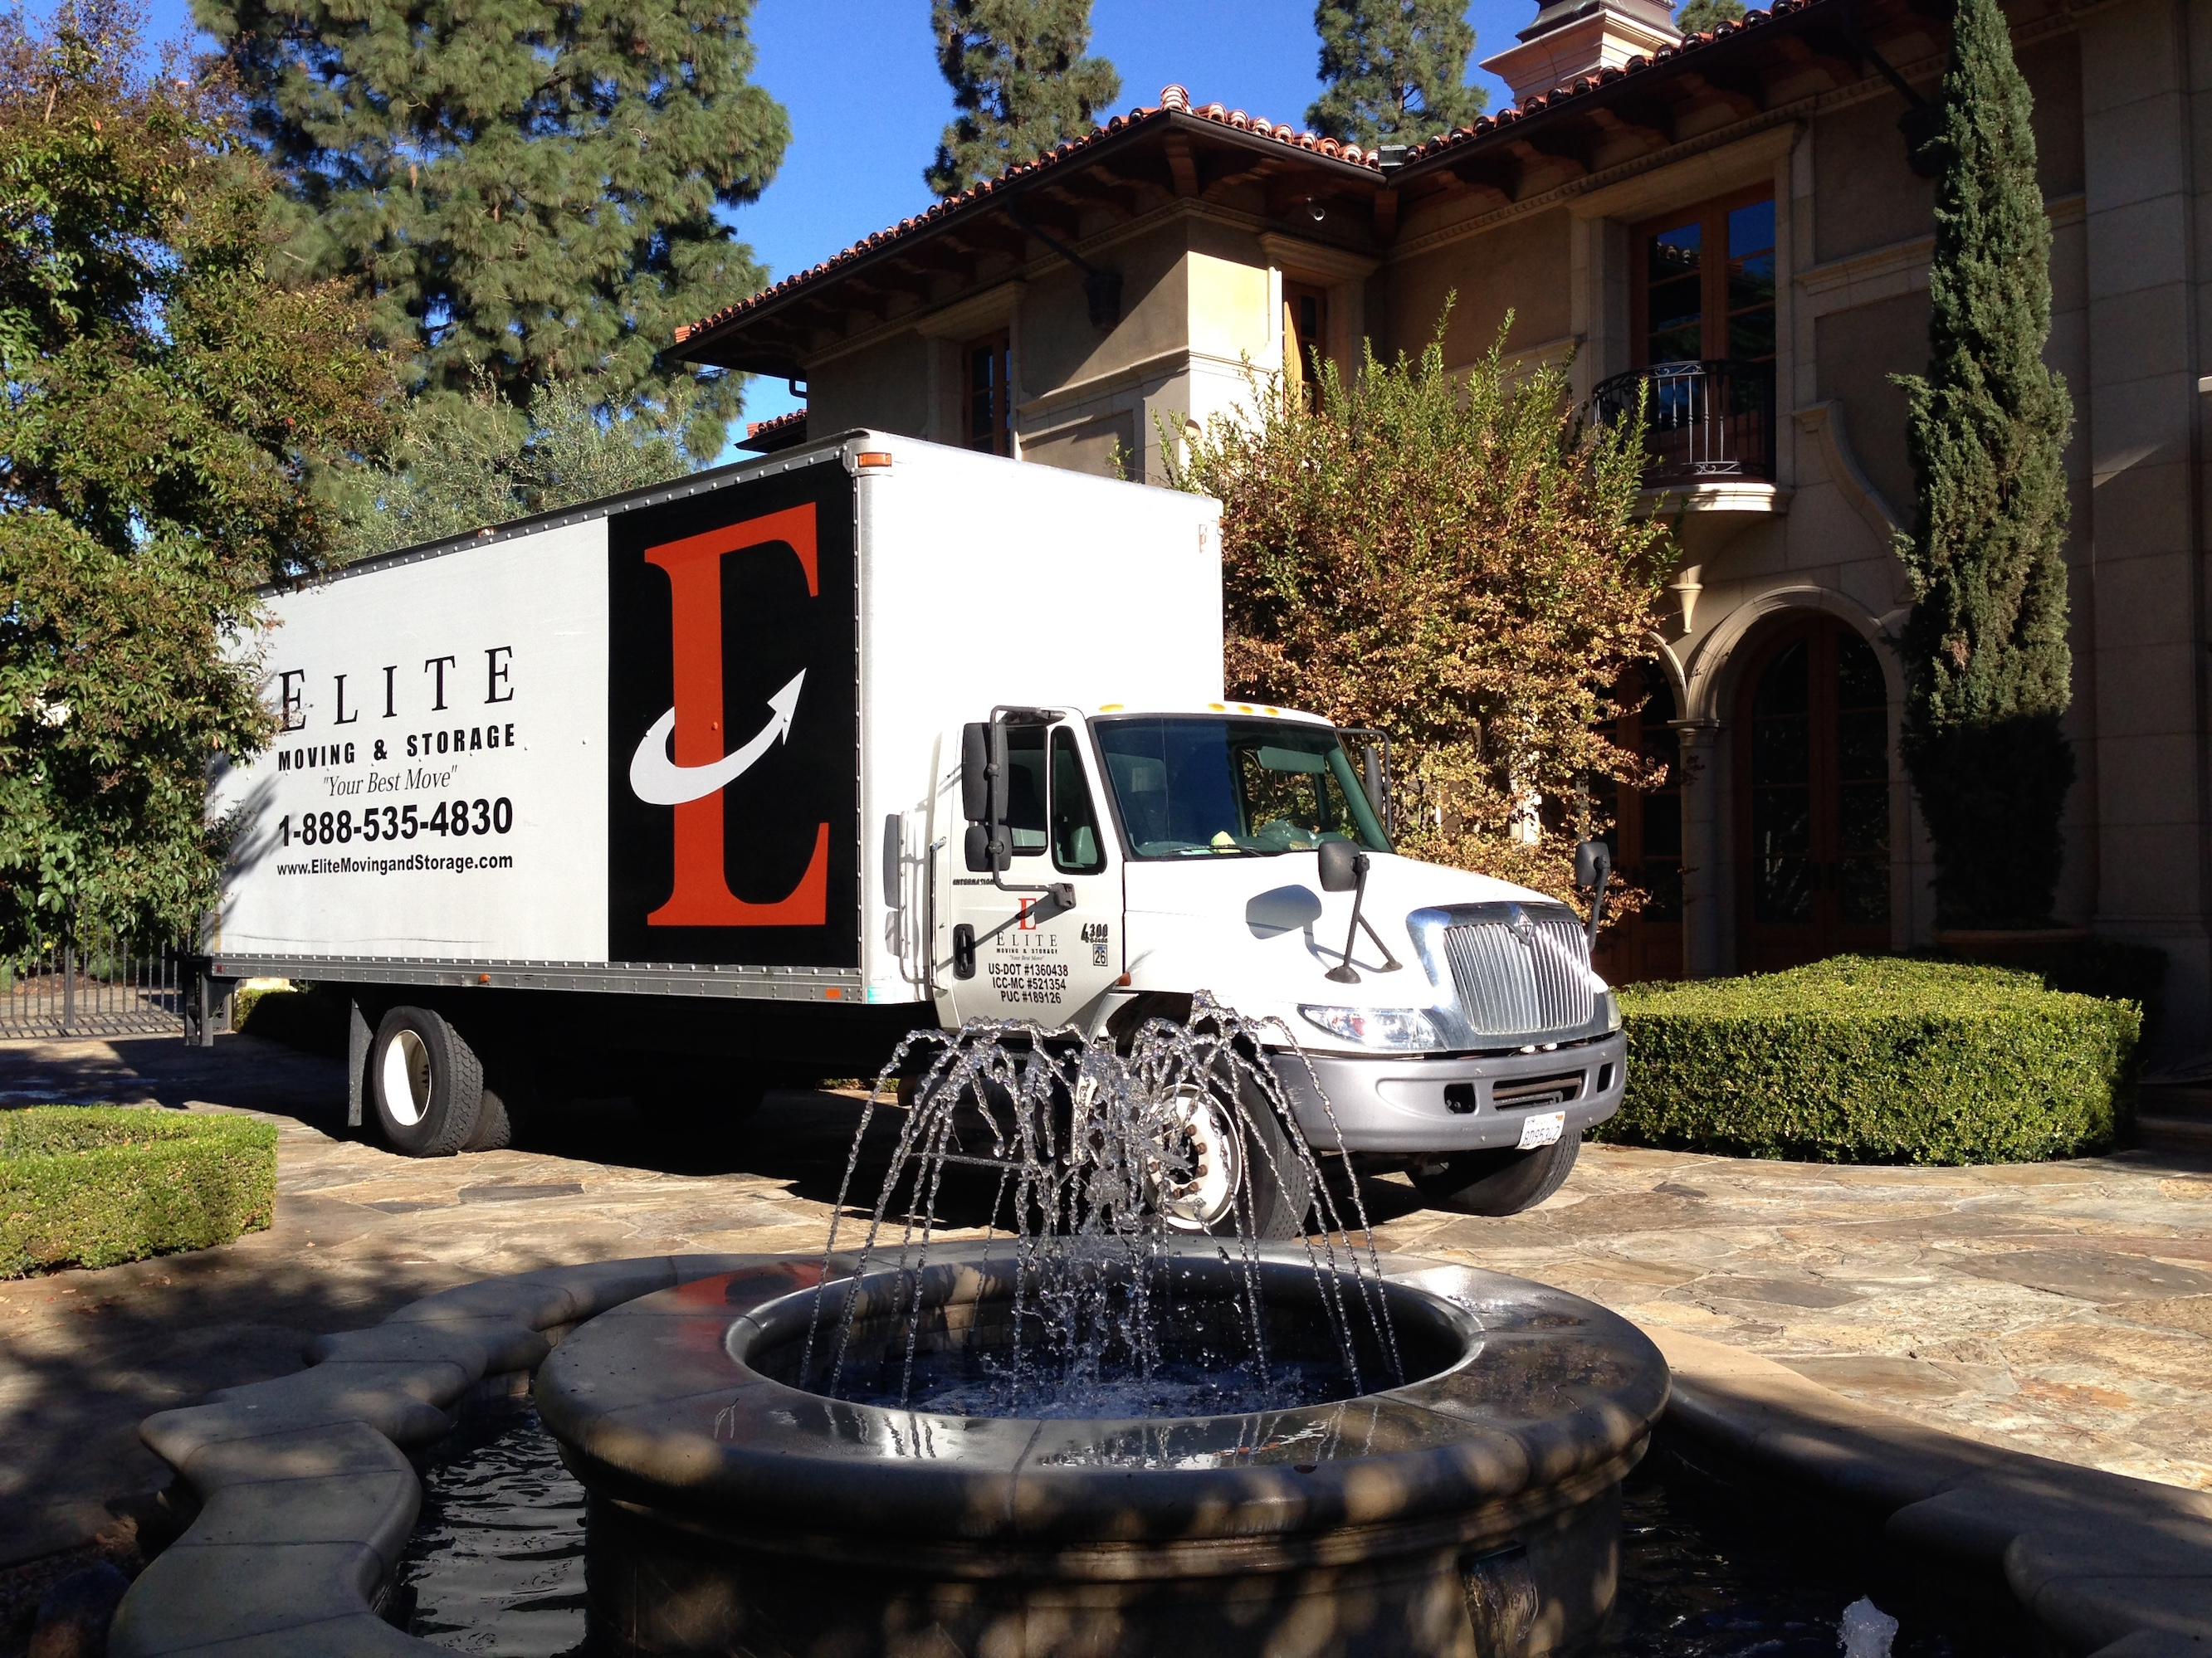 The Best Newport Beach Movers - Elite Moving and Storage